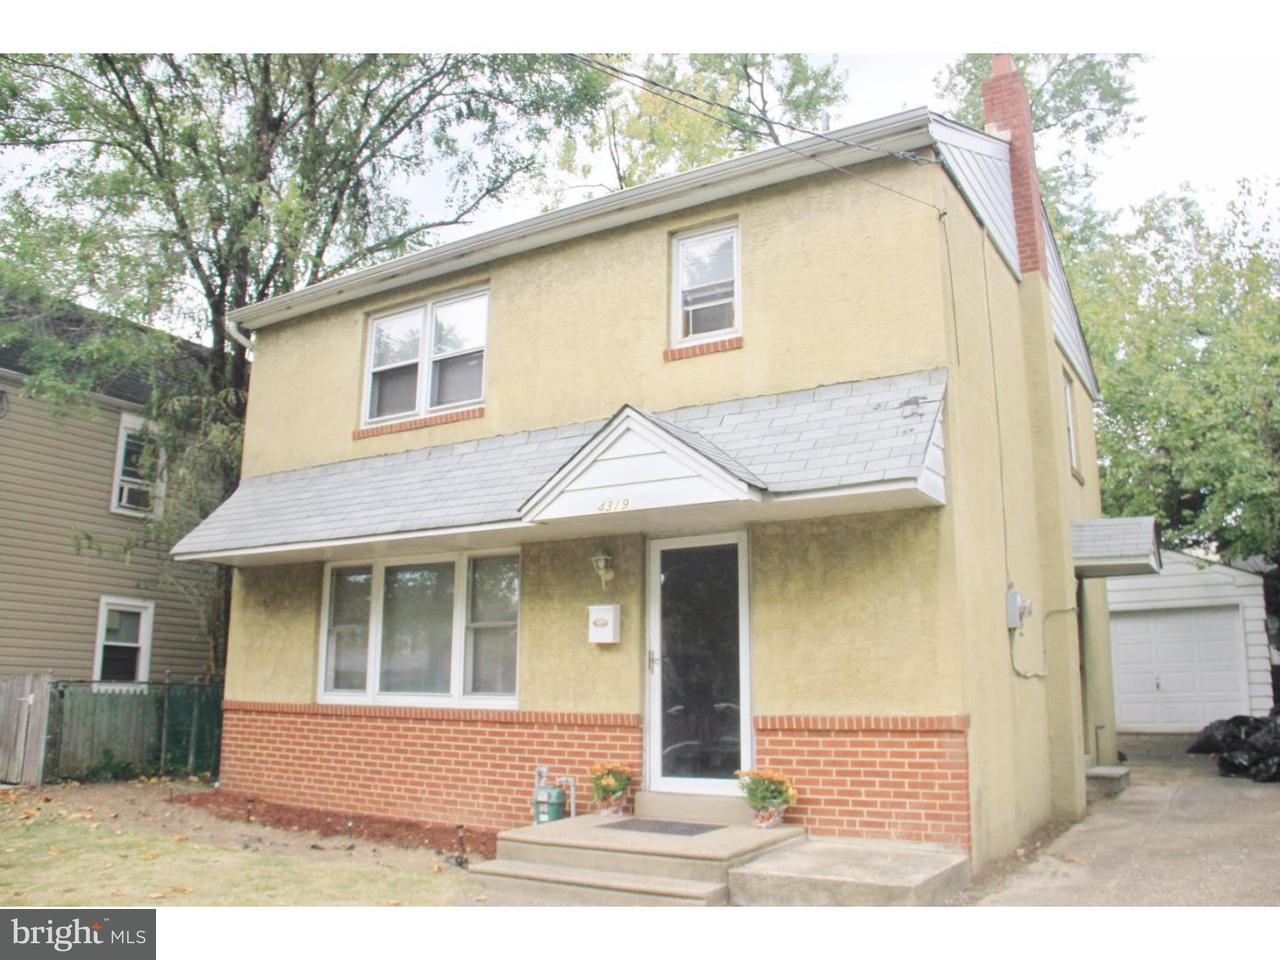 Single Family Home for Rent at 4319 REMINGTON Avenue Pennsauken, New Jersey 08110 United States